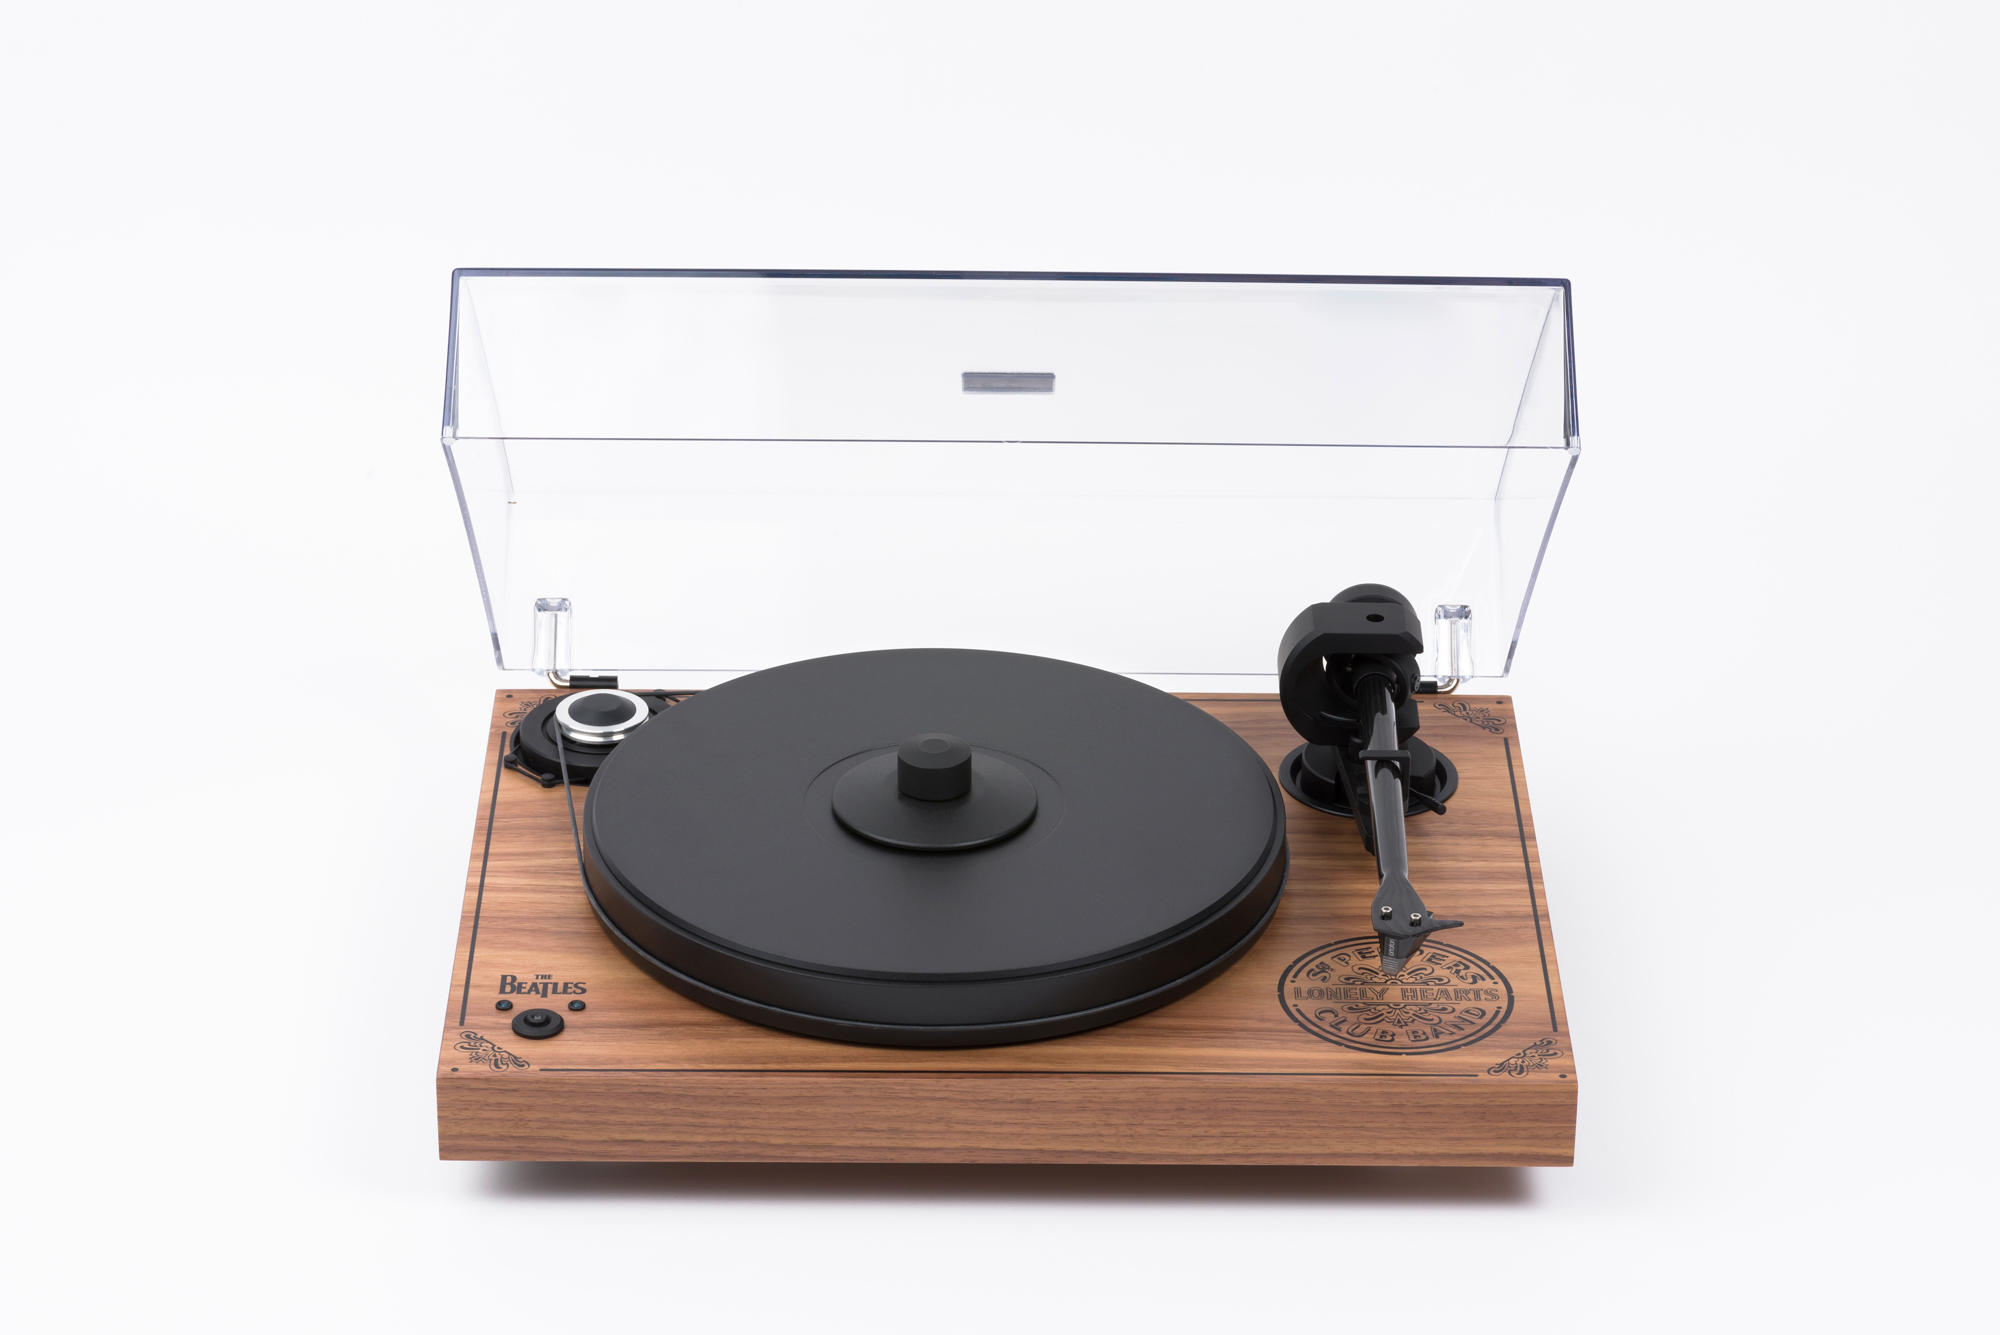 Pro Ject Announce Sgt Pepper Turntables Zouch Audio